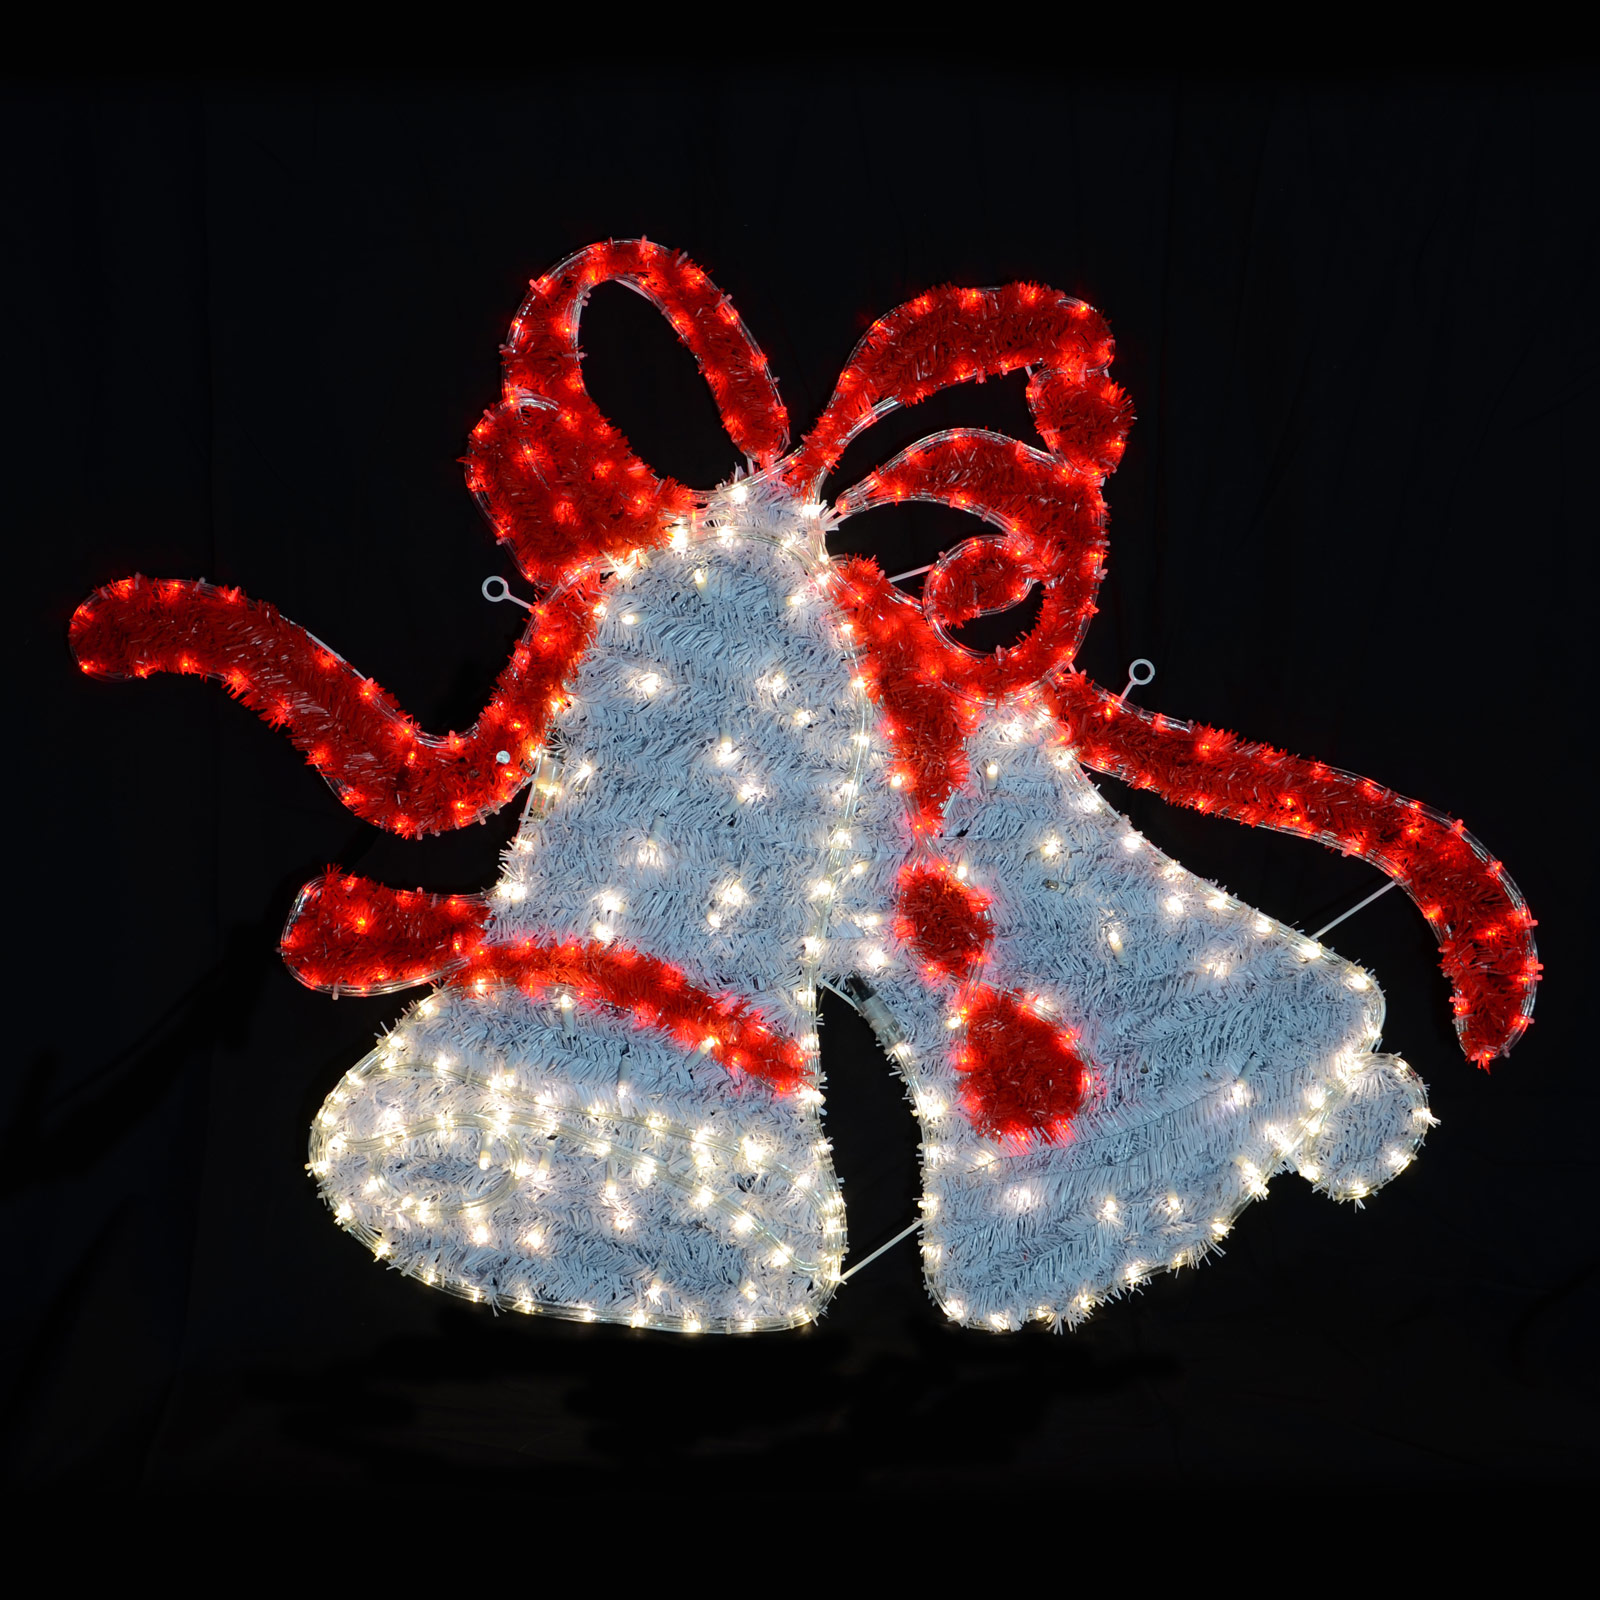 Giant 114cm Twinkling LED Rope Lights Twin Bells Christmas